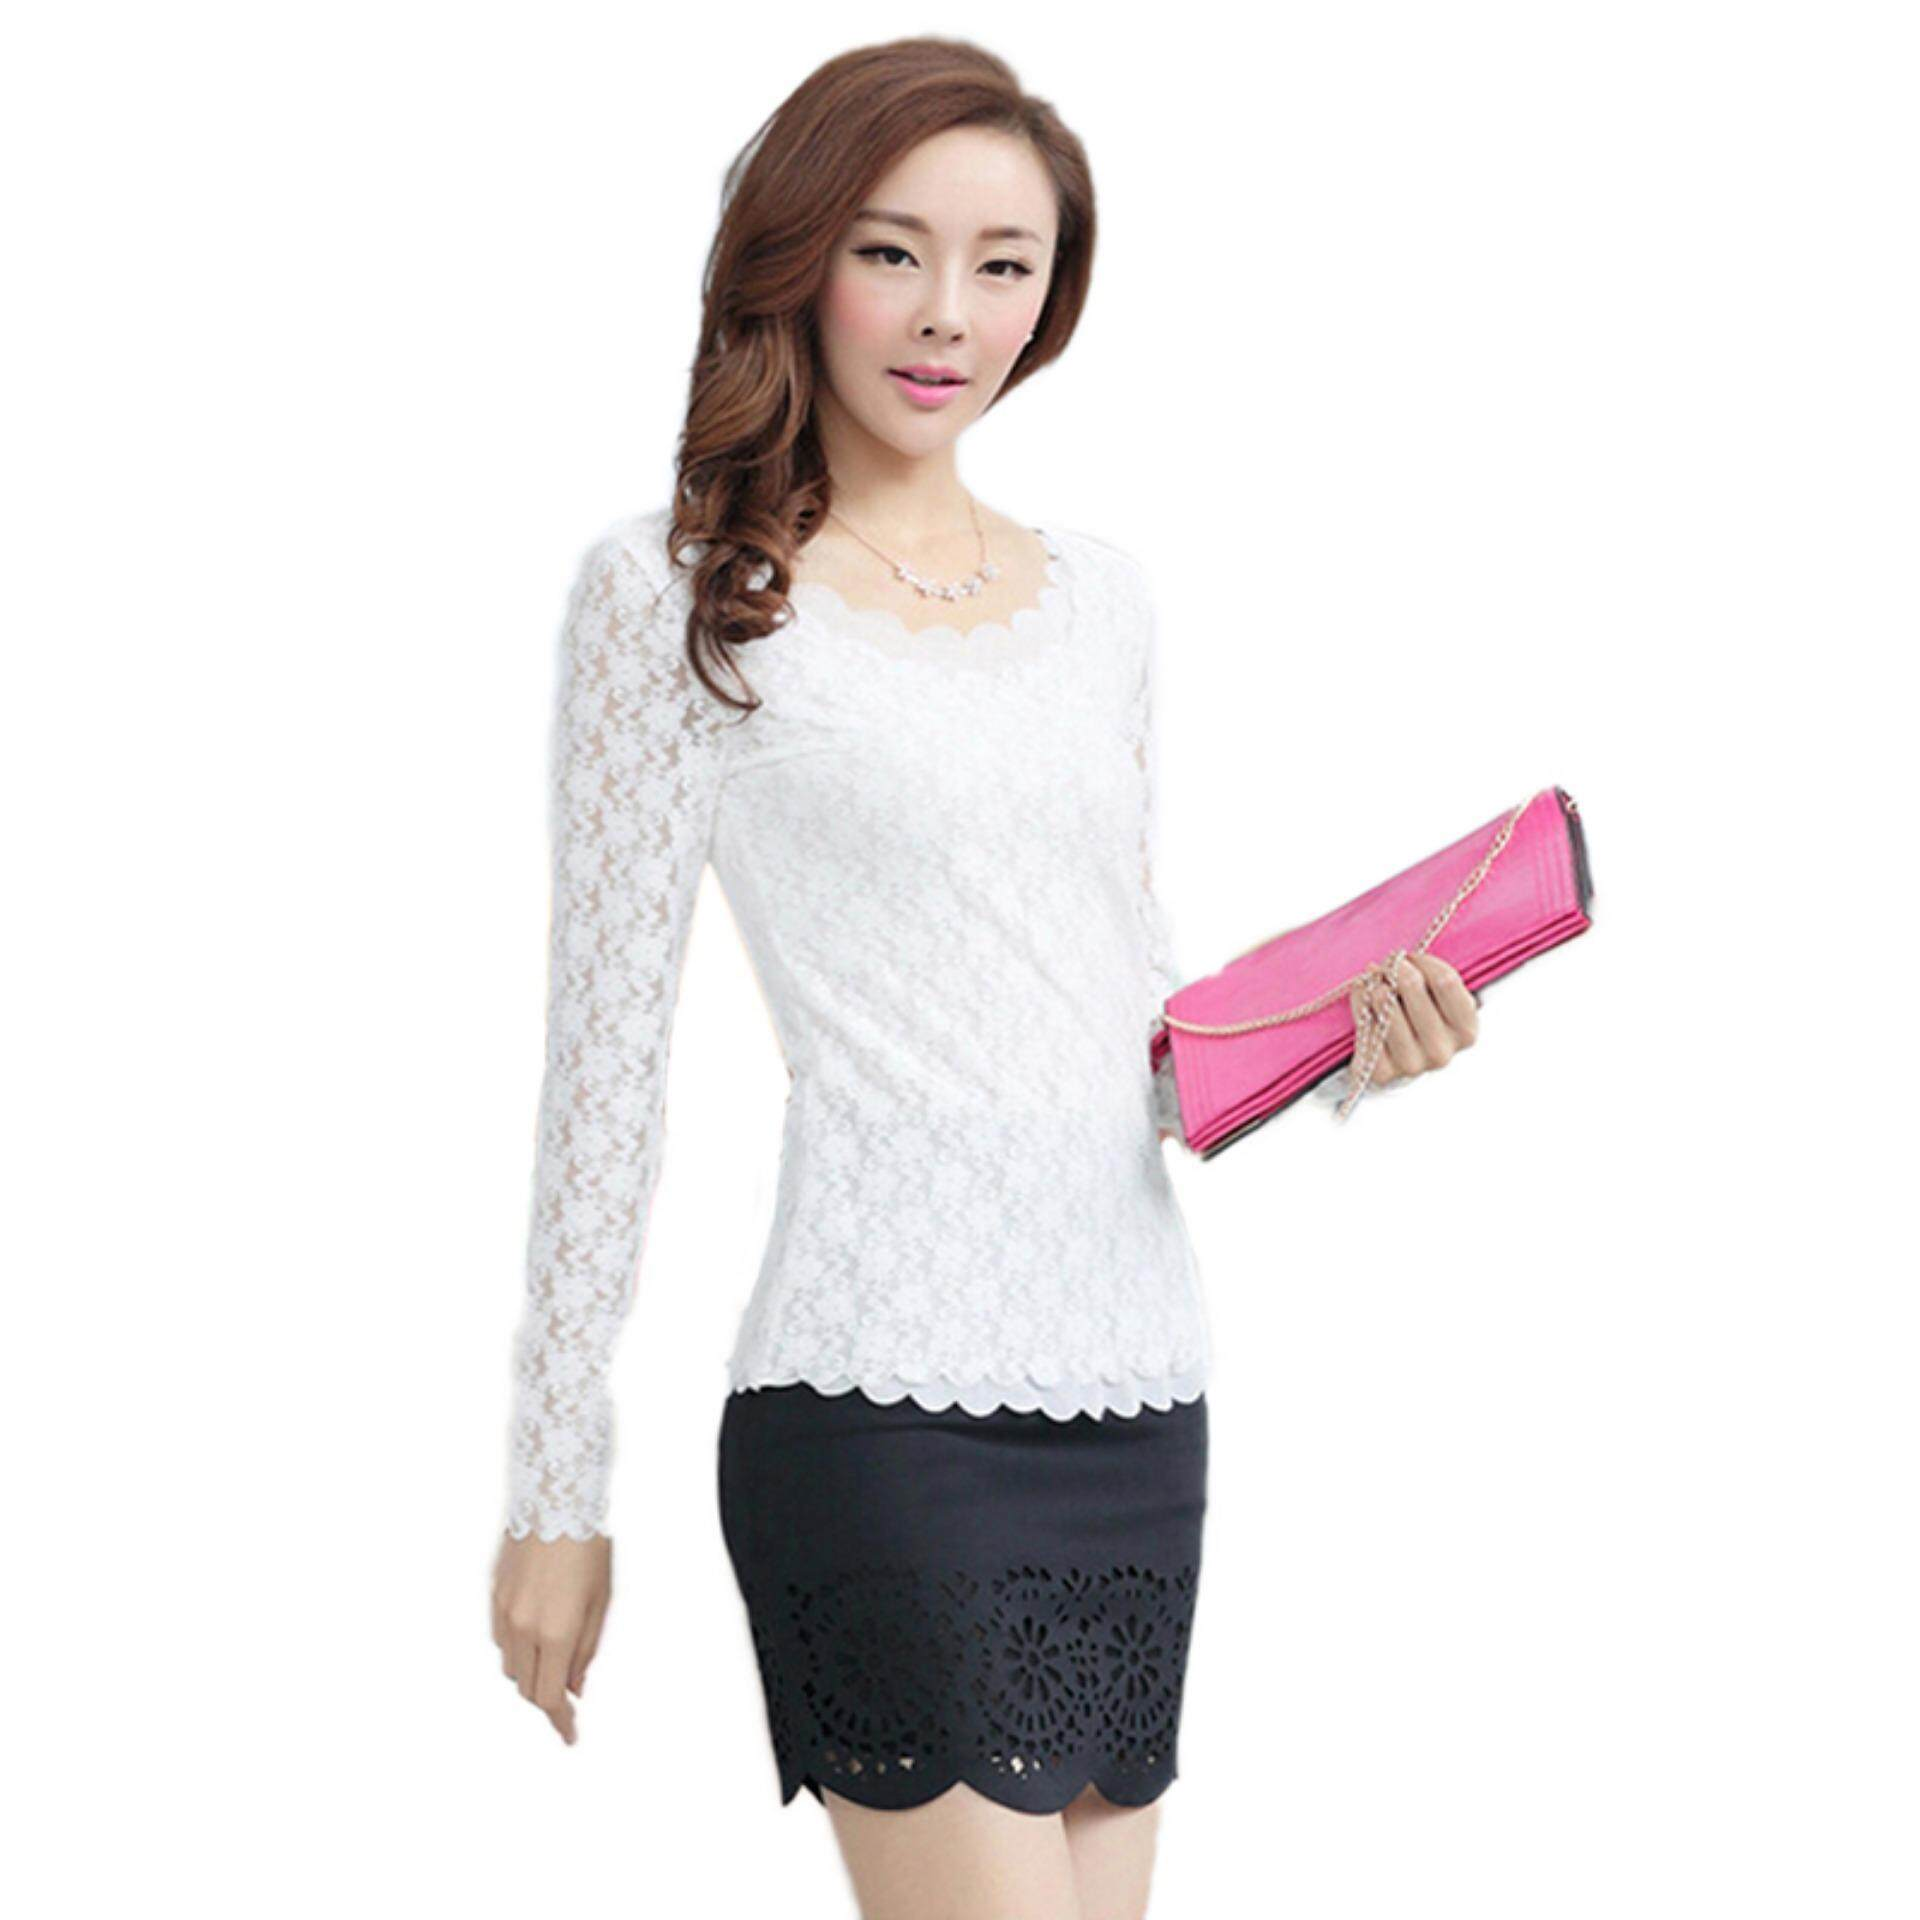 Buy Sell Cheapest Floral T Best Quality Product Deals Indonesian Lover Graphic Shirts Putih L Women Lady Slim Lace Long Sleeve Shirt Blouse Top White Intl